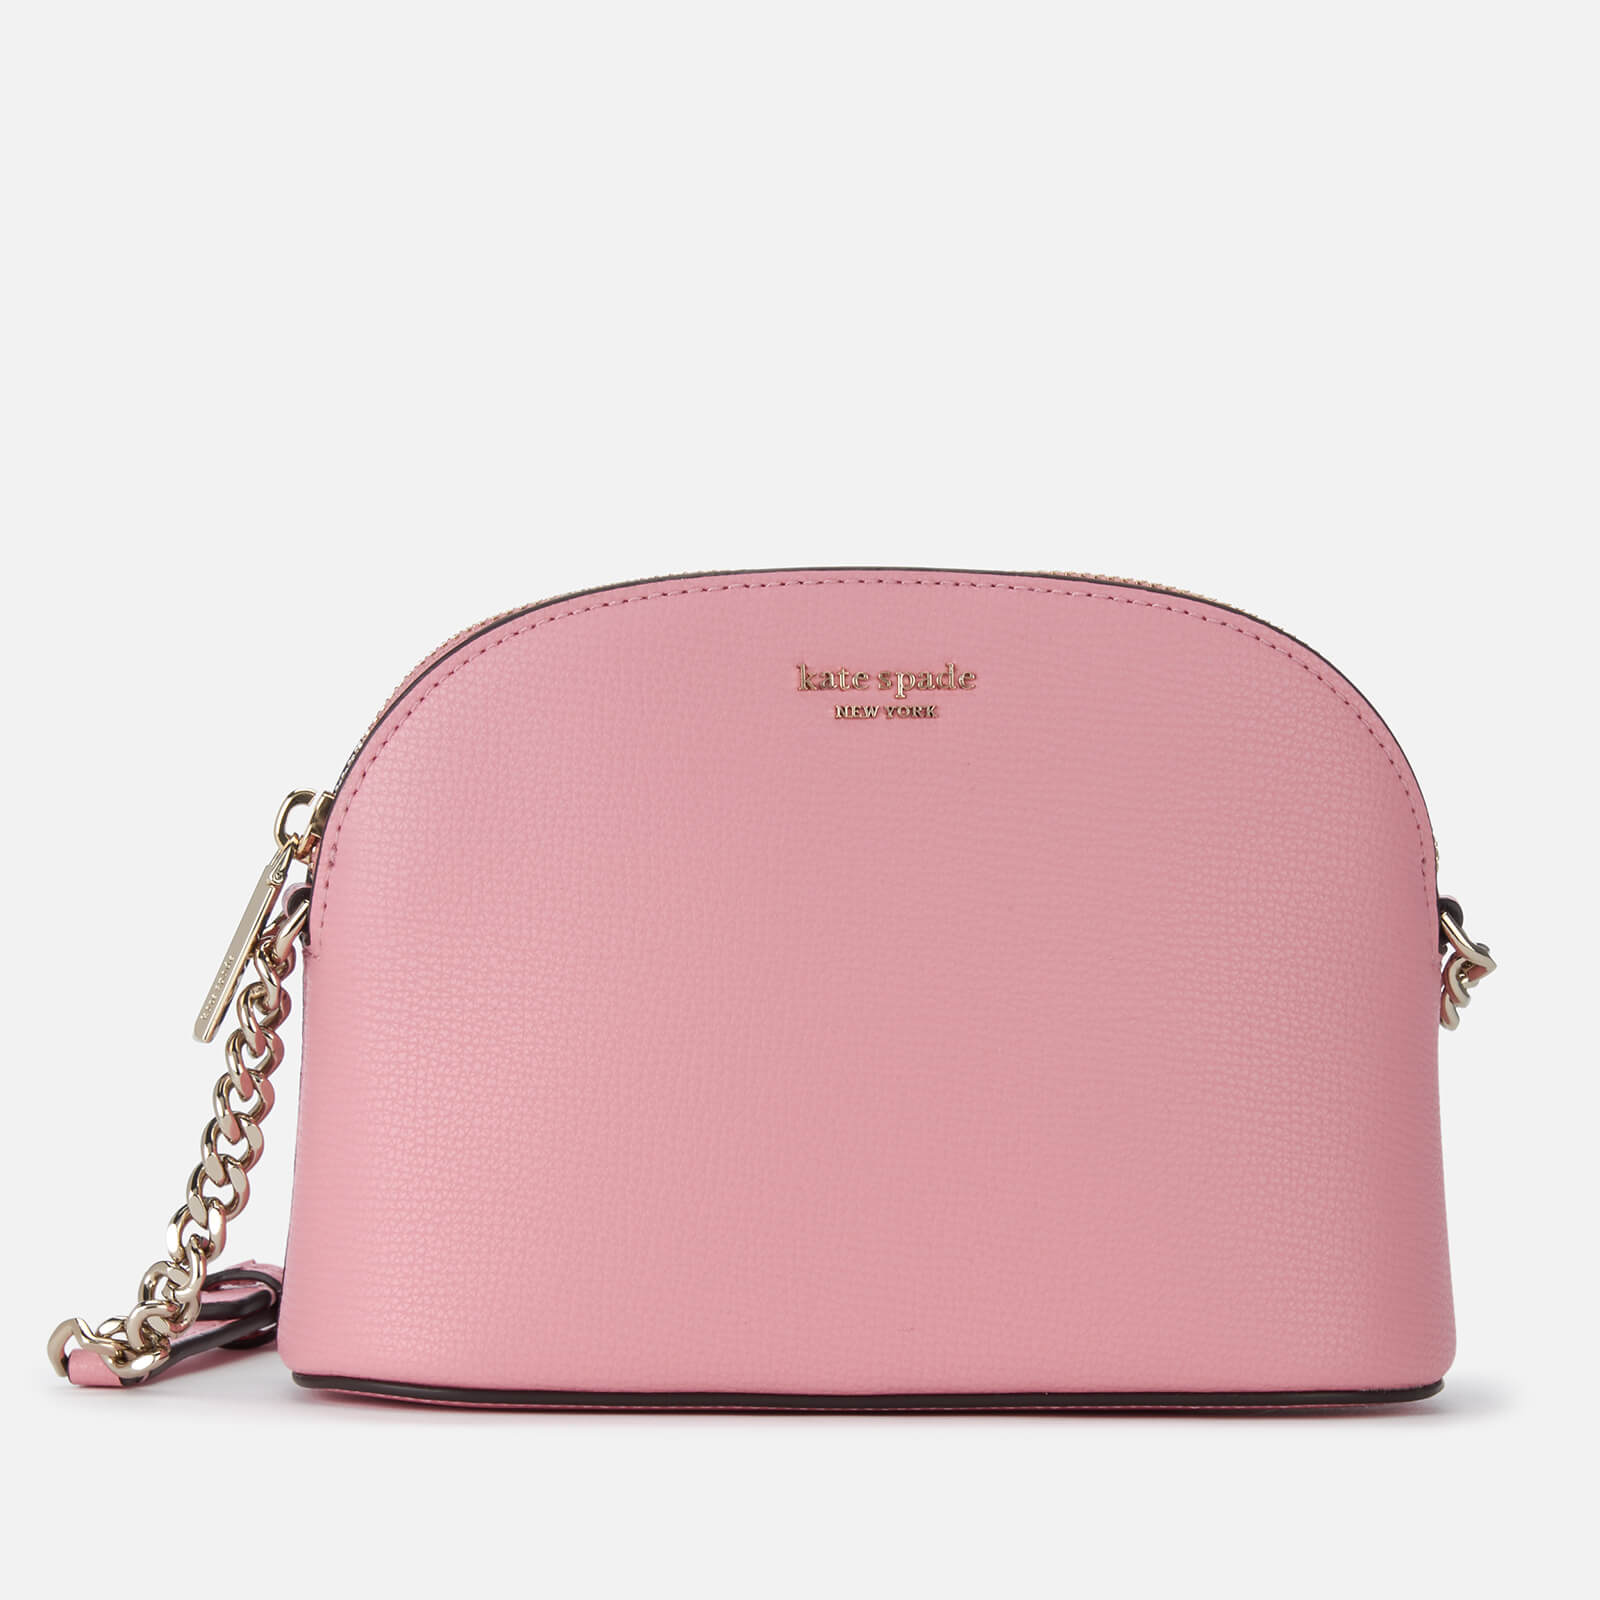 82c4faa4533 Kate Spade New York Women's Sylvia Small Dome Cross Body Bag - Rococo Pink